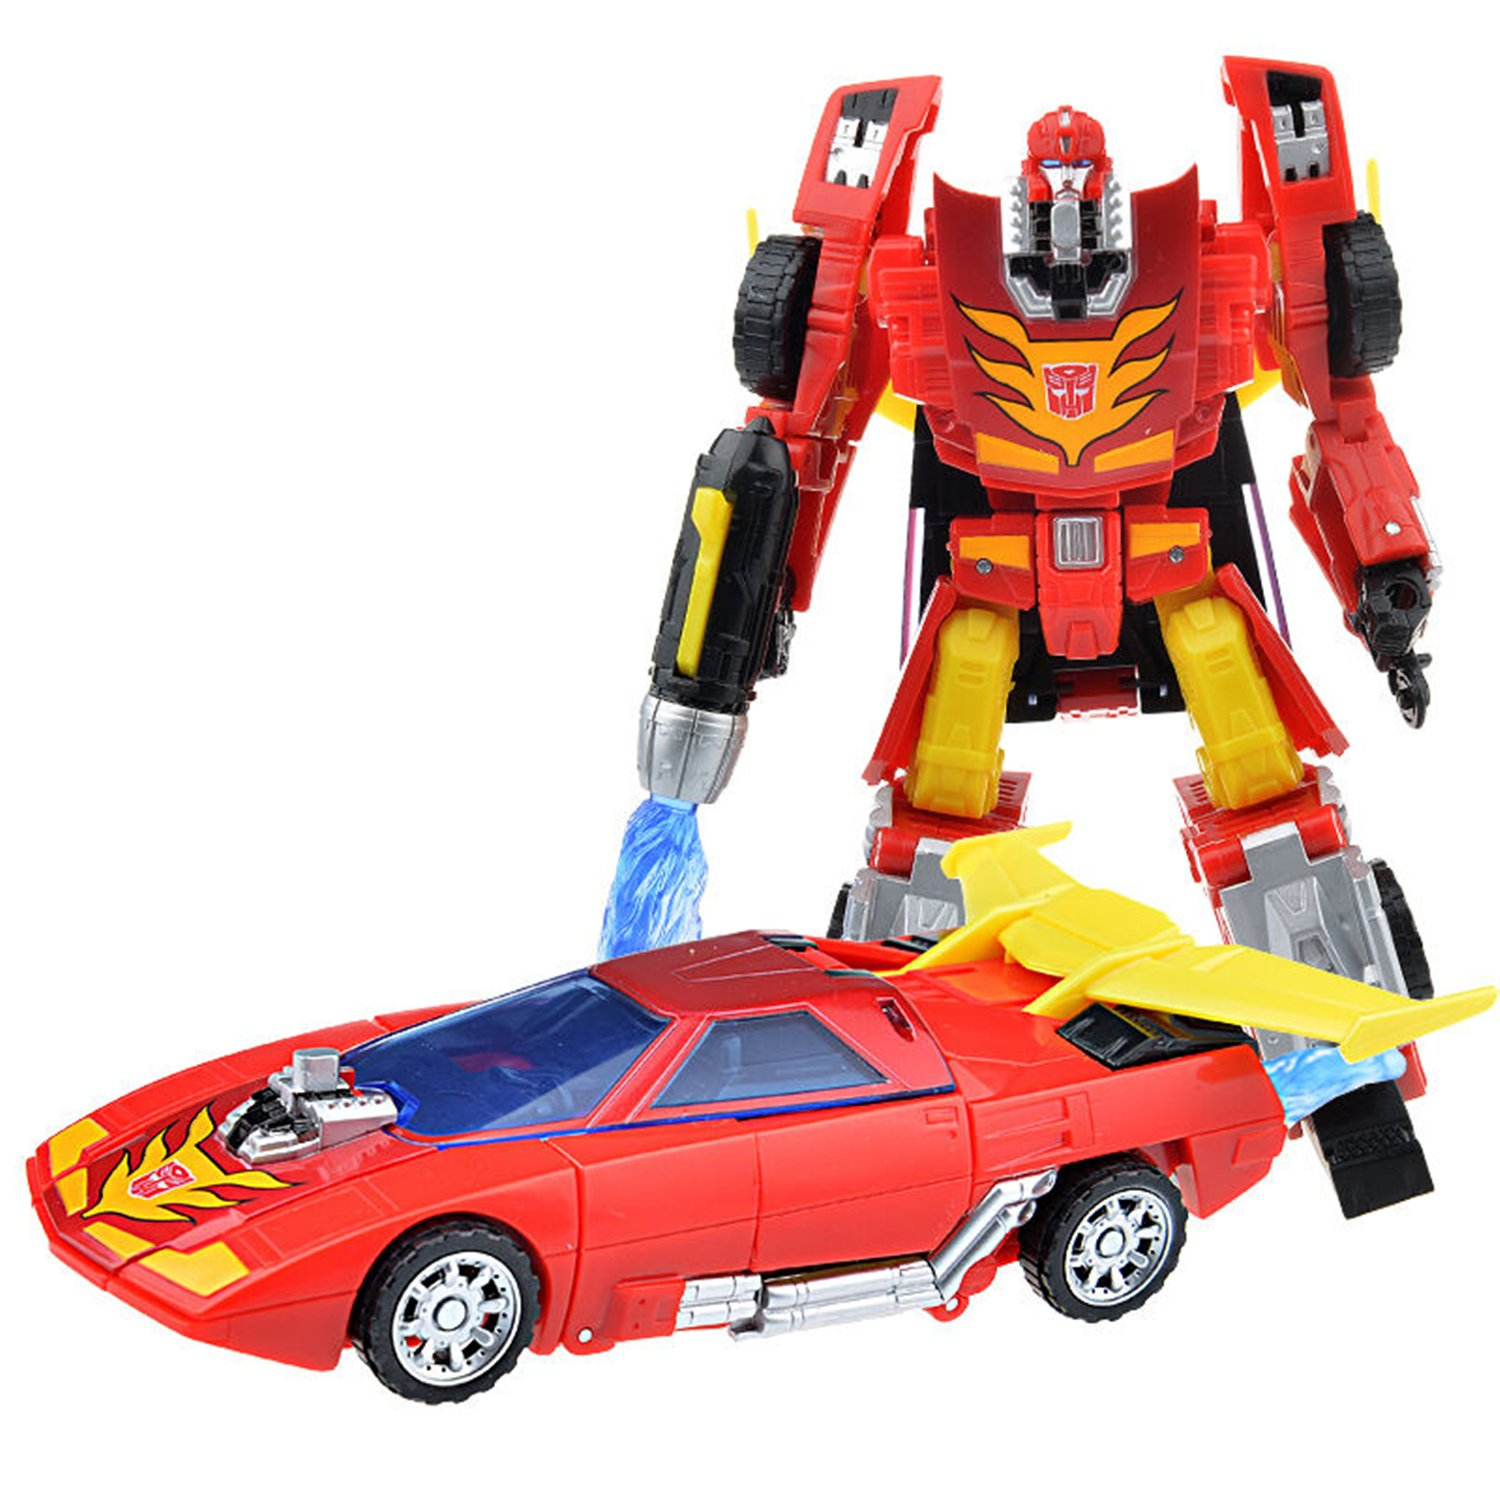 Transformers B5883 Platinum Edition Deluxe Toy, 3-Pack by by by Transformers 3529aa